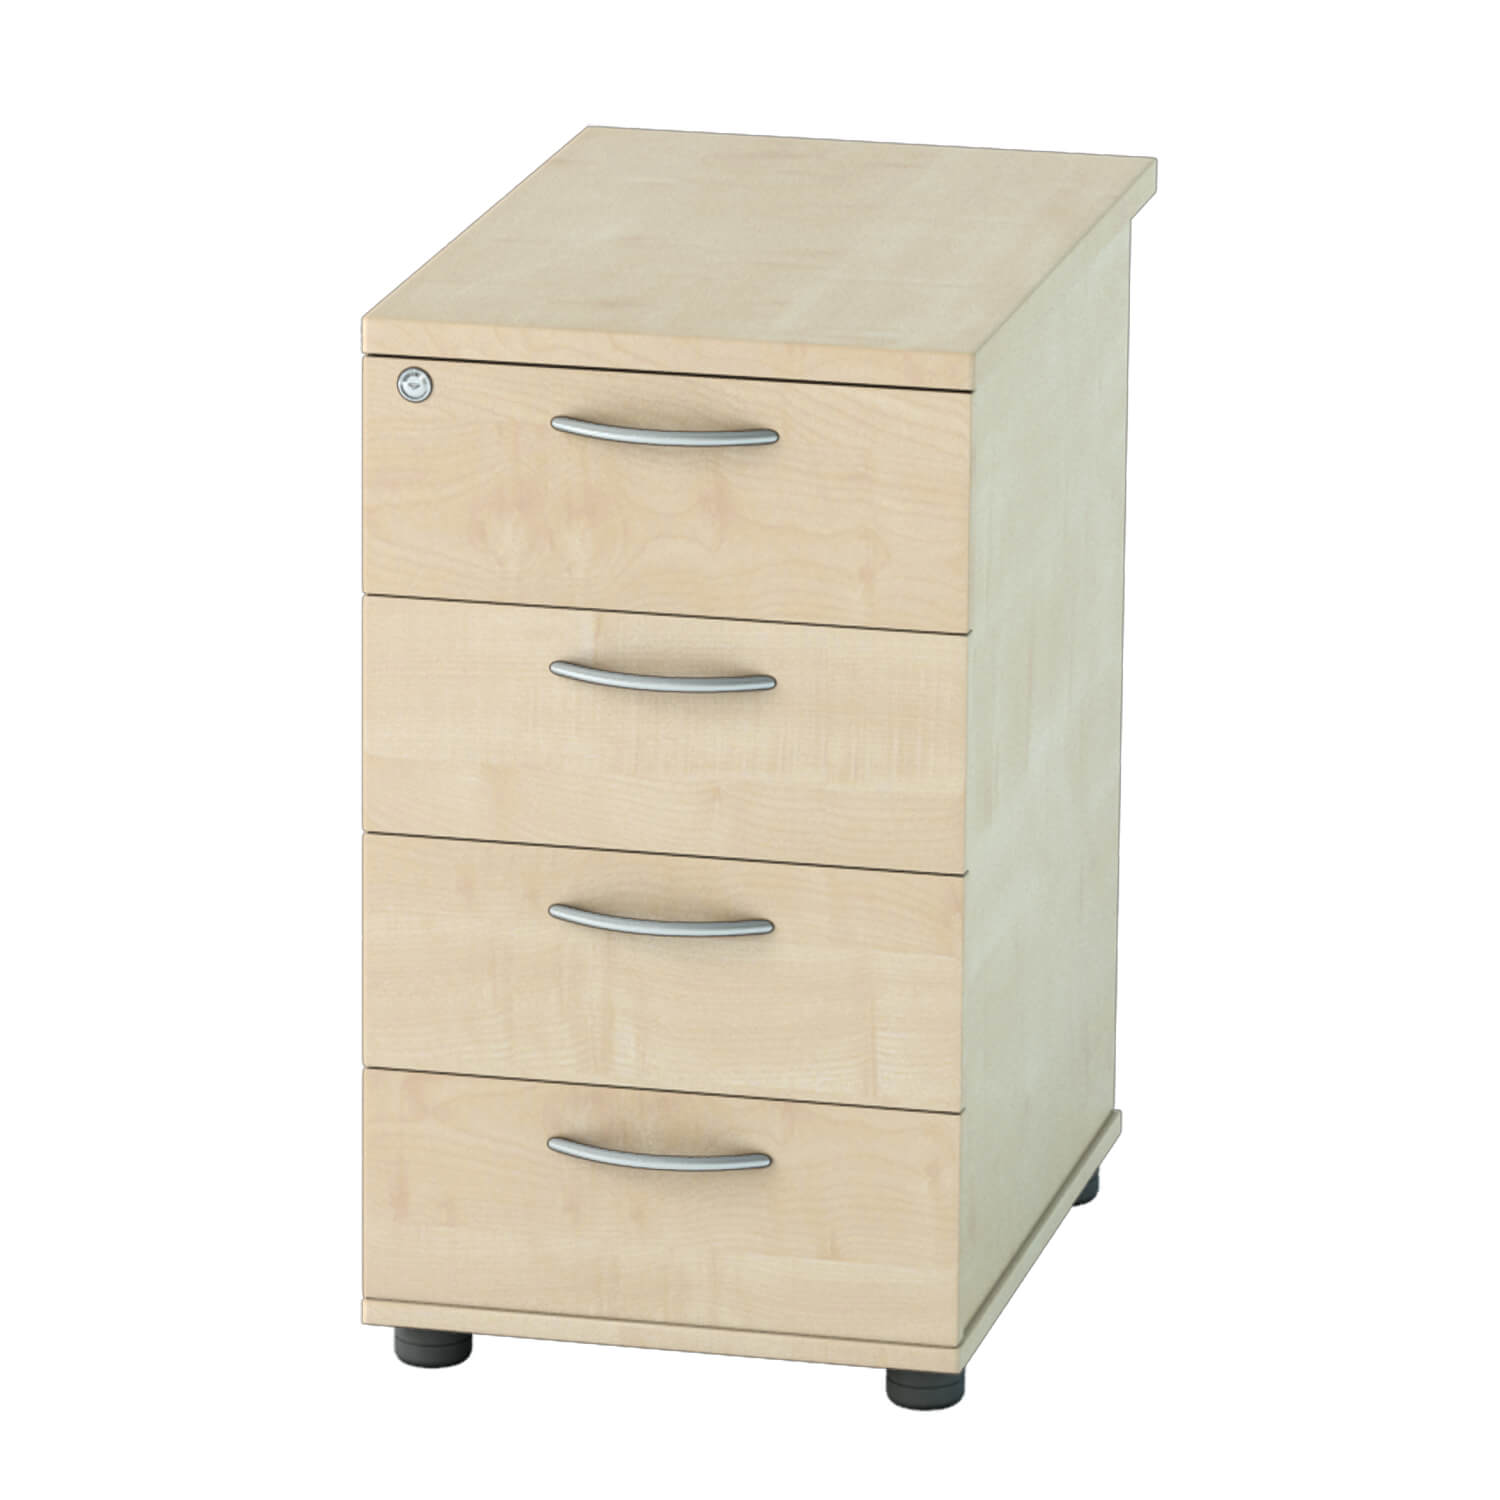 DH Pedestal 4 drawer Maple